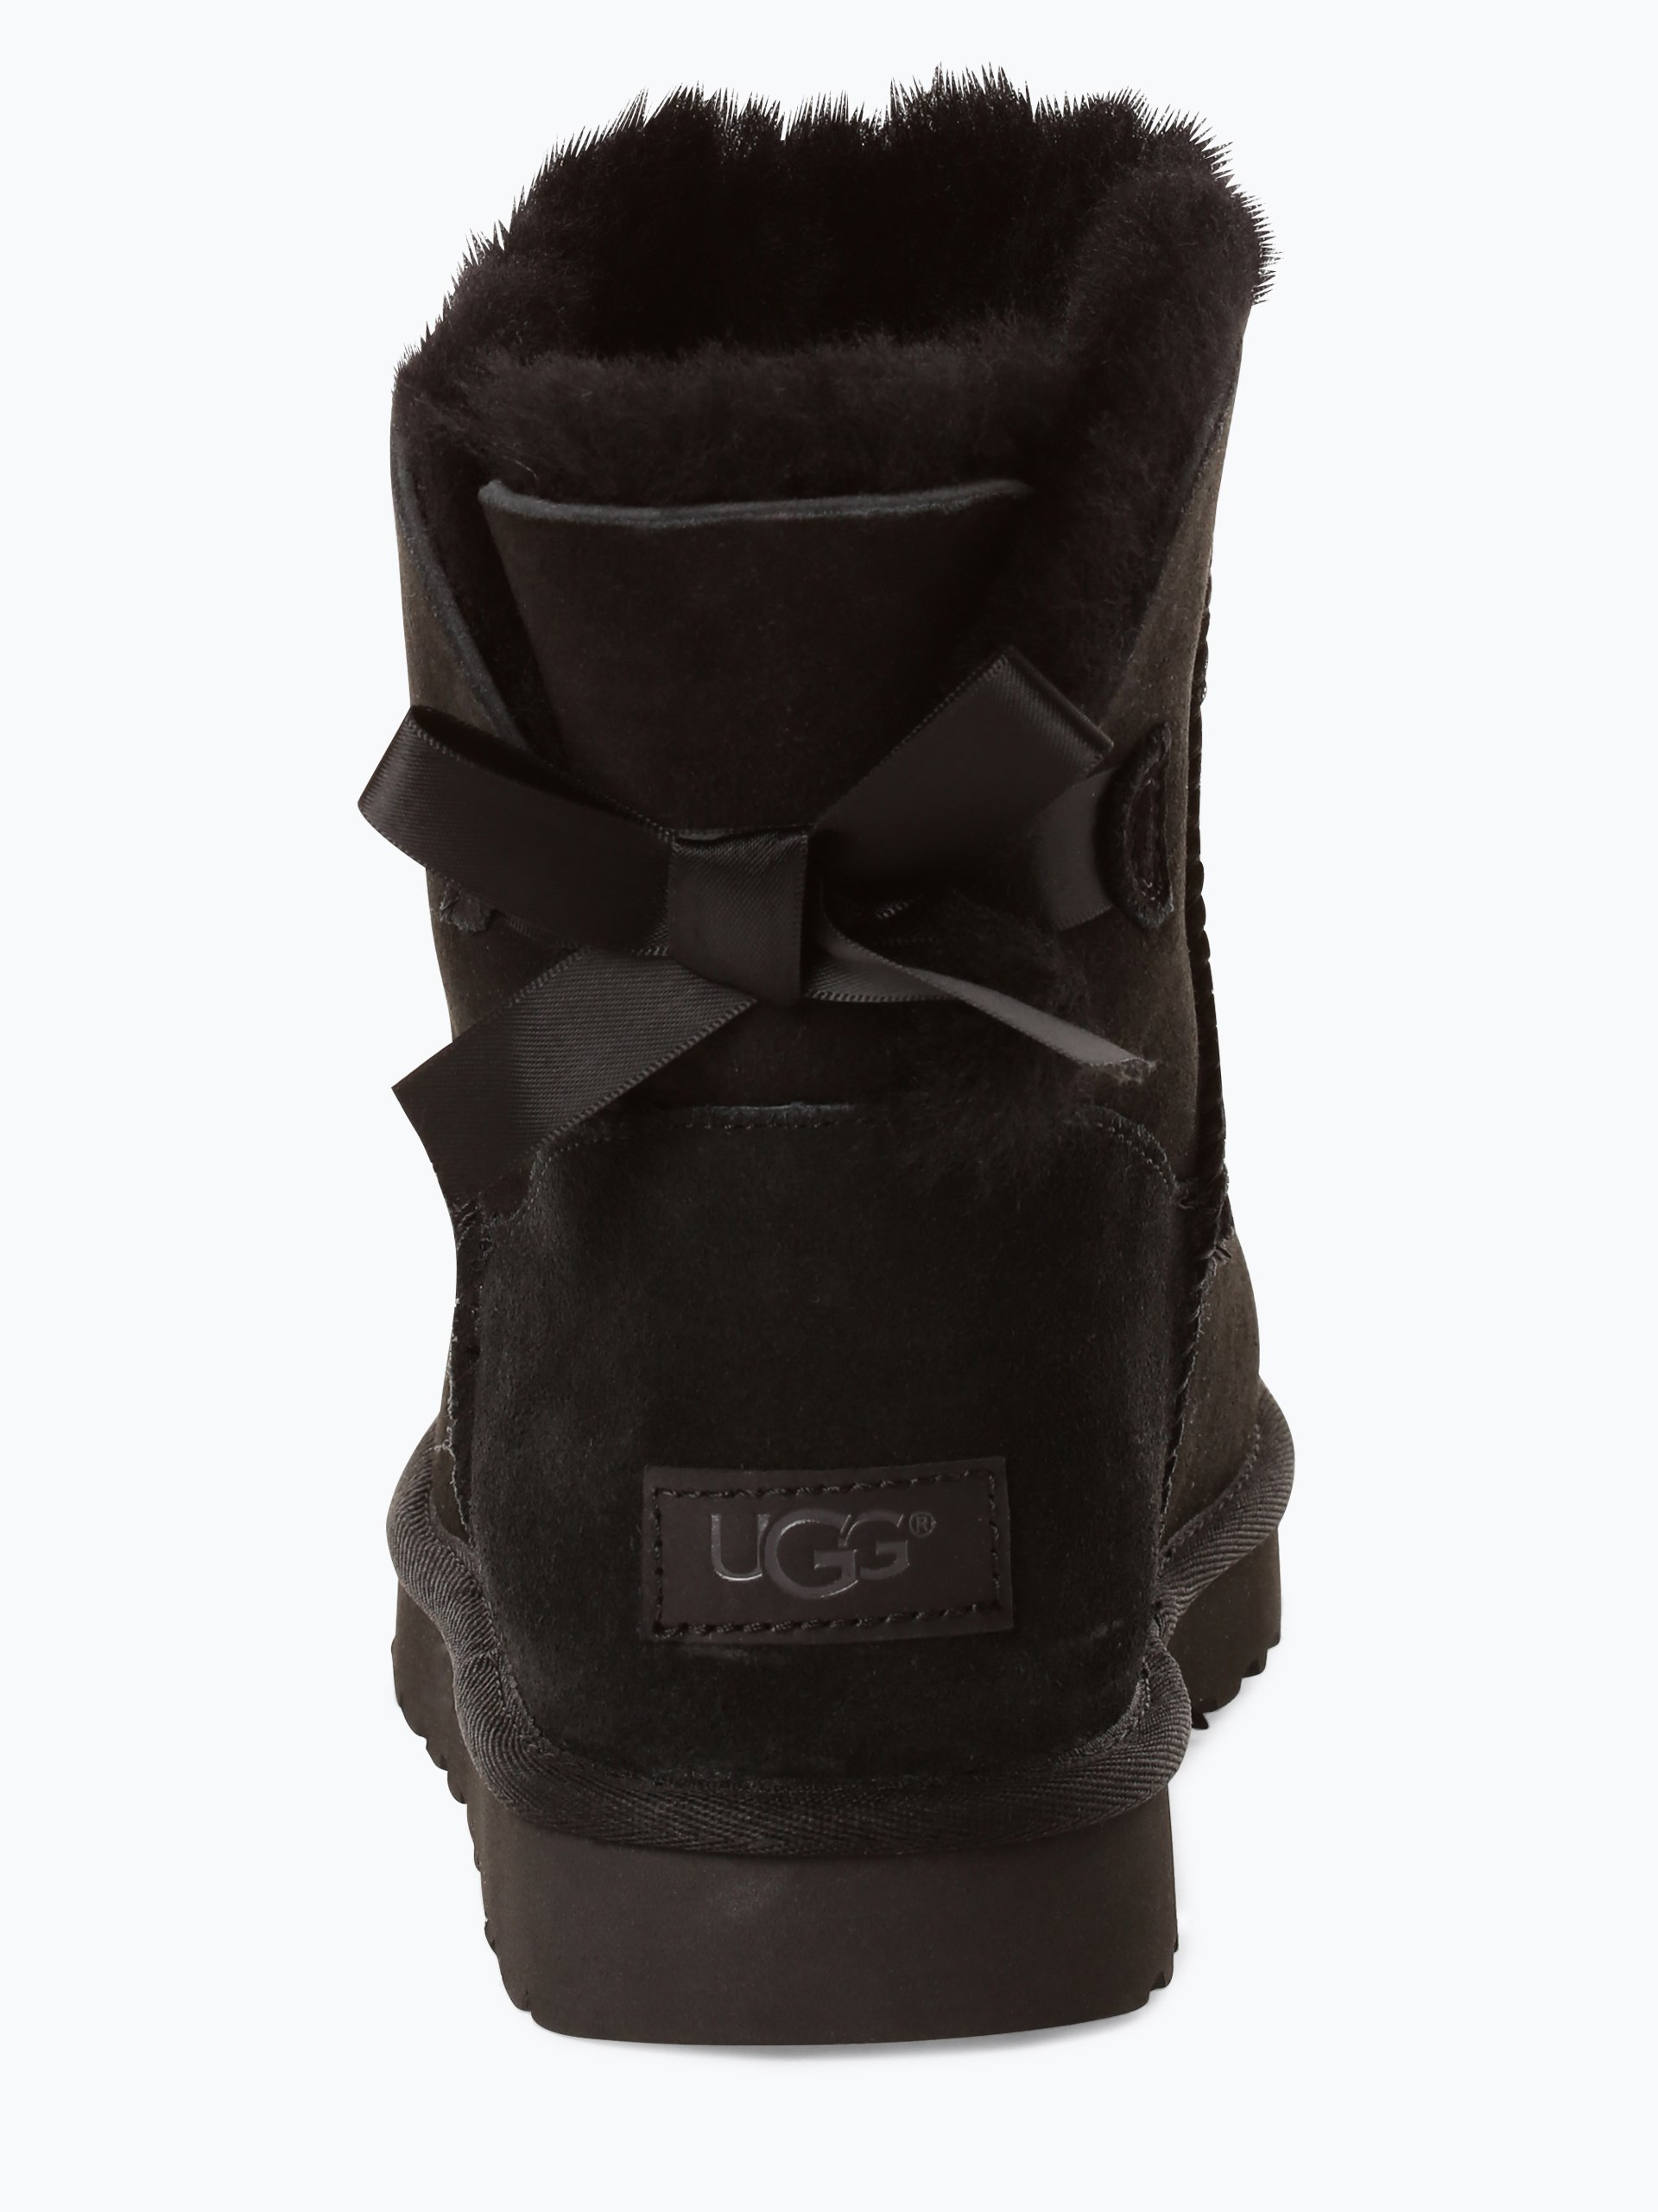 UGG Damen Boots aus Leder - Mini Bailey Bow II